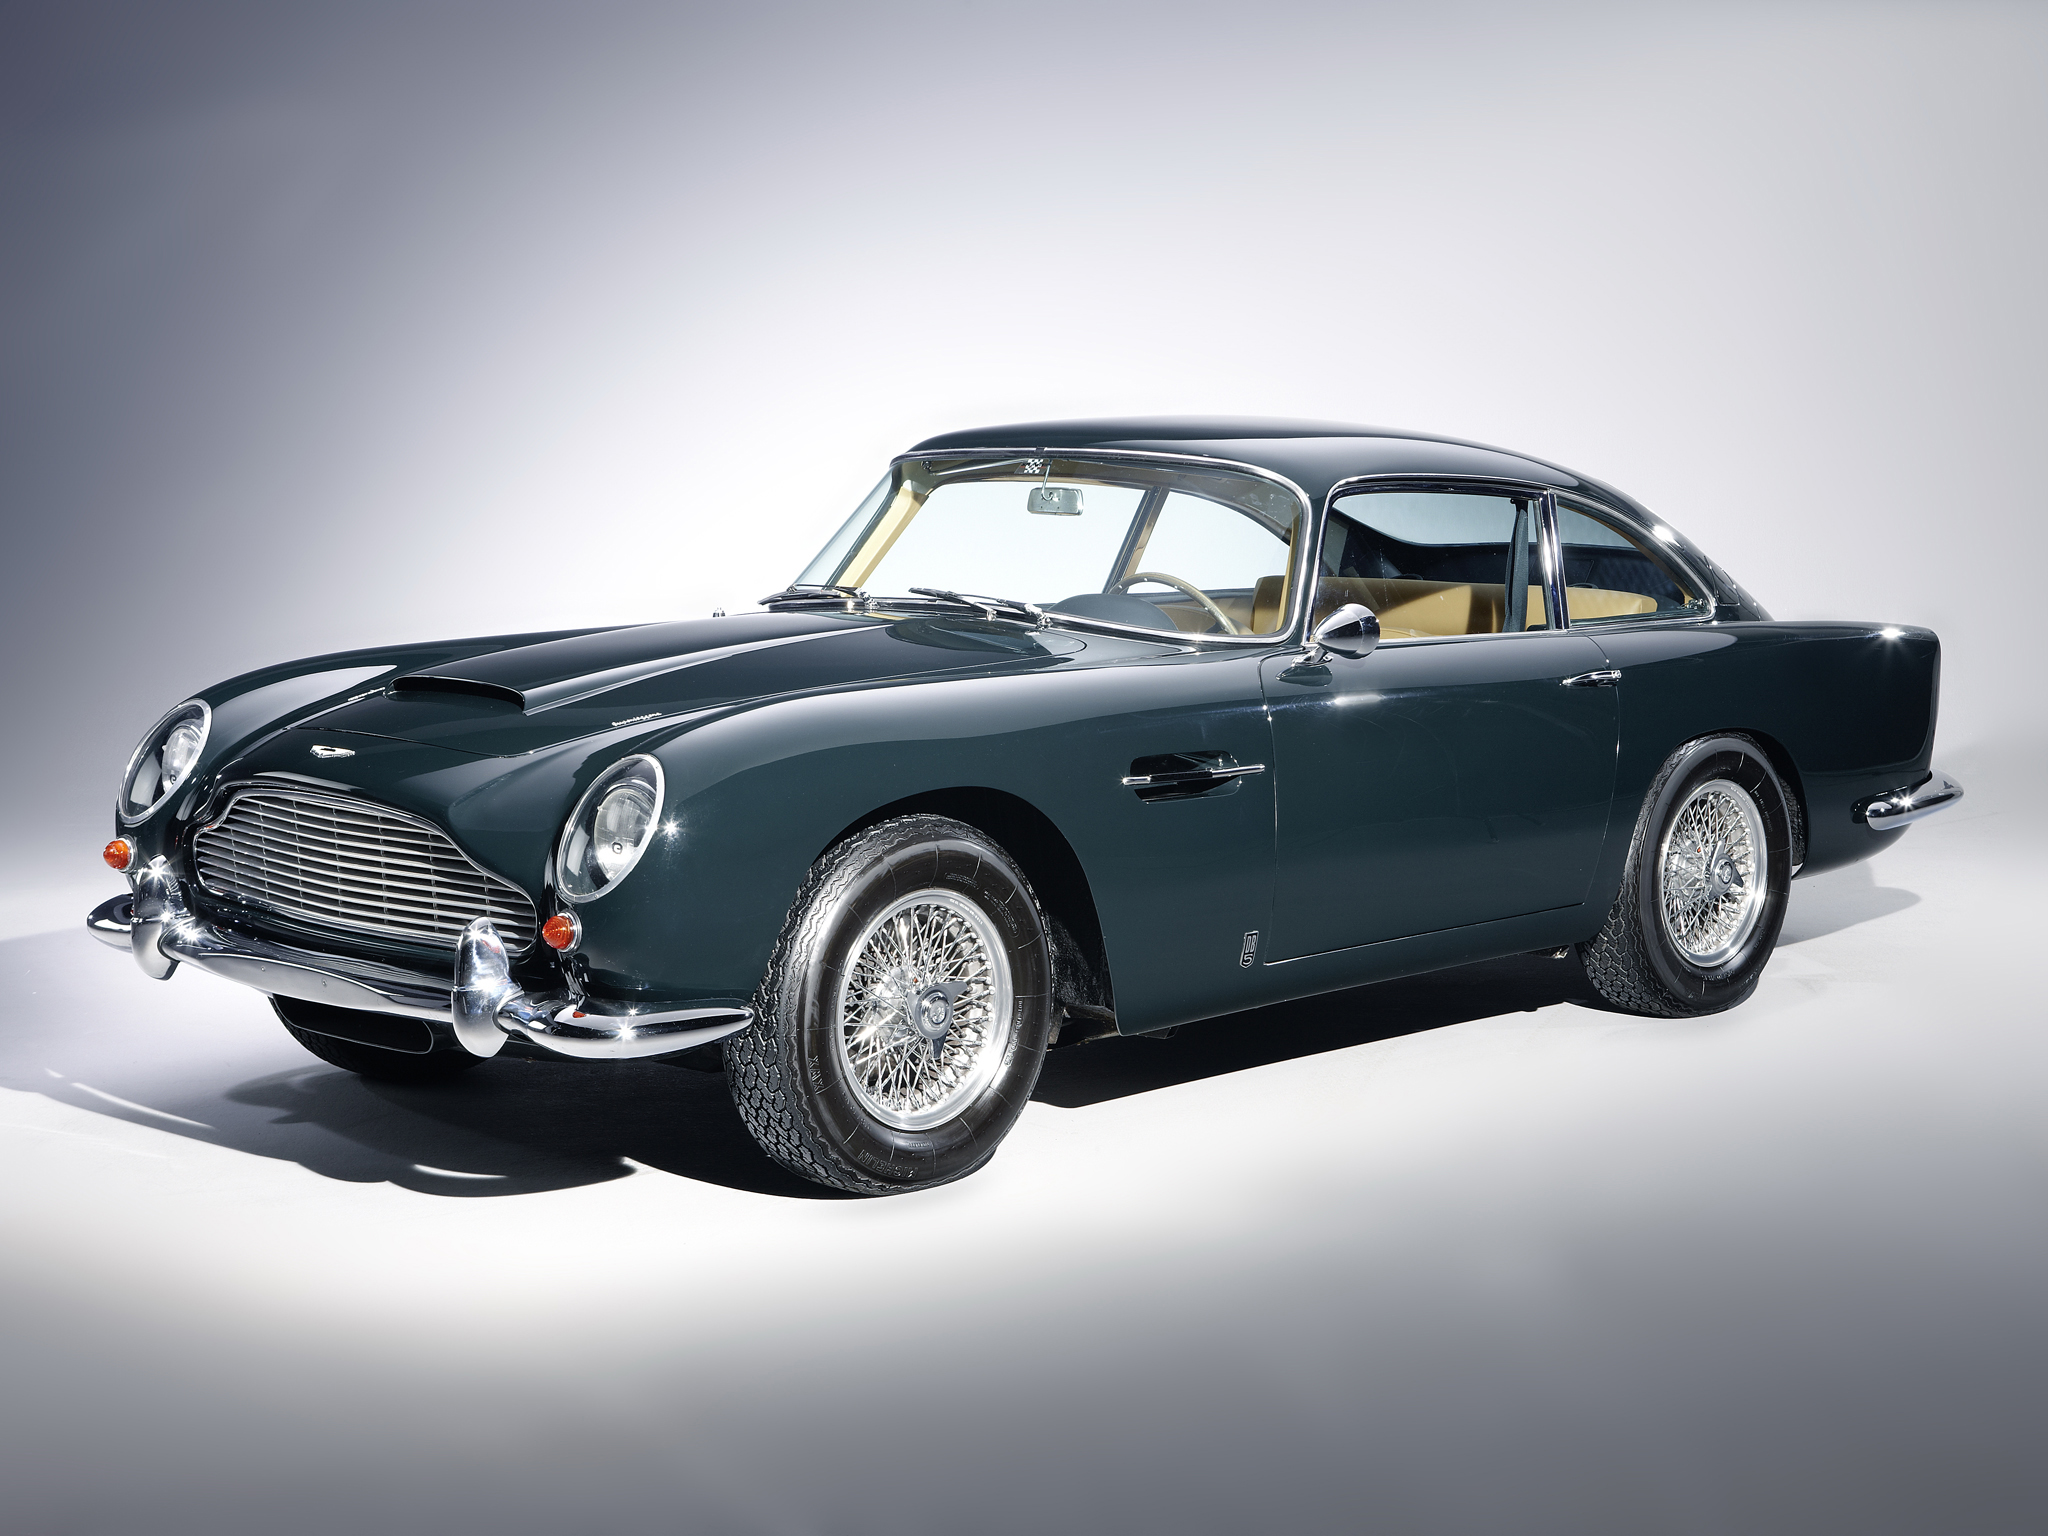 aston martin db5 walpapers archives hd desktop. Black Bedroom Furniture Sets. Home Design Ideas